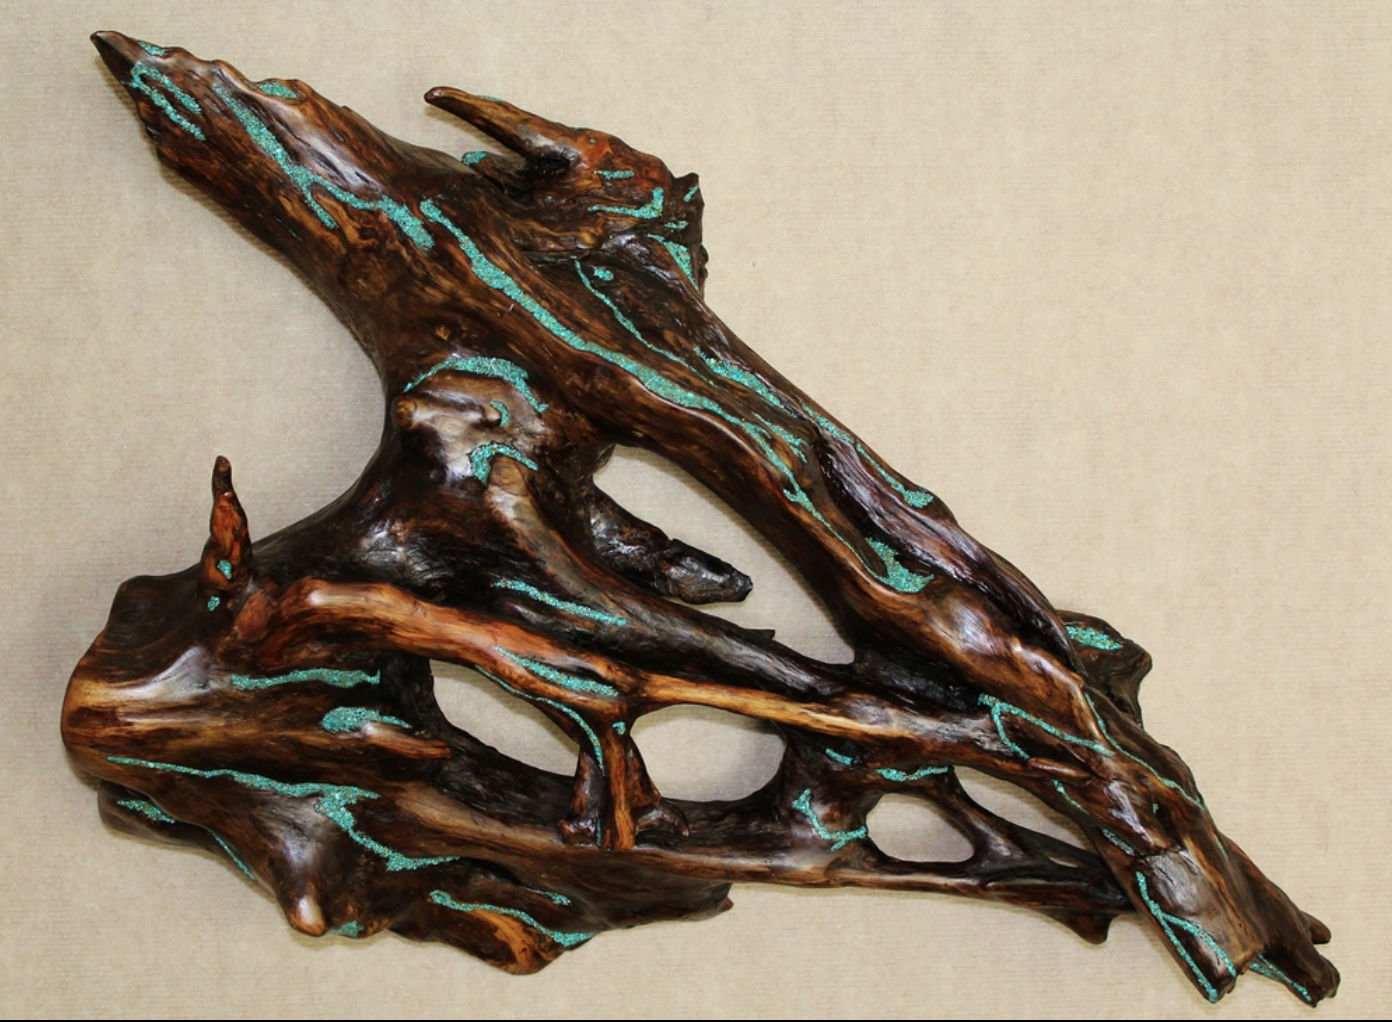 David Savage - Personally collected driftwood pieces transformed into sculpture, wall art, lamps and bowls.Each piece is inlayed with turquoise,finely sanded and finished with hand rubbed oils.